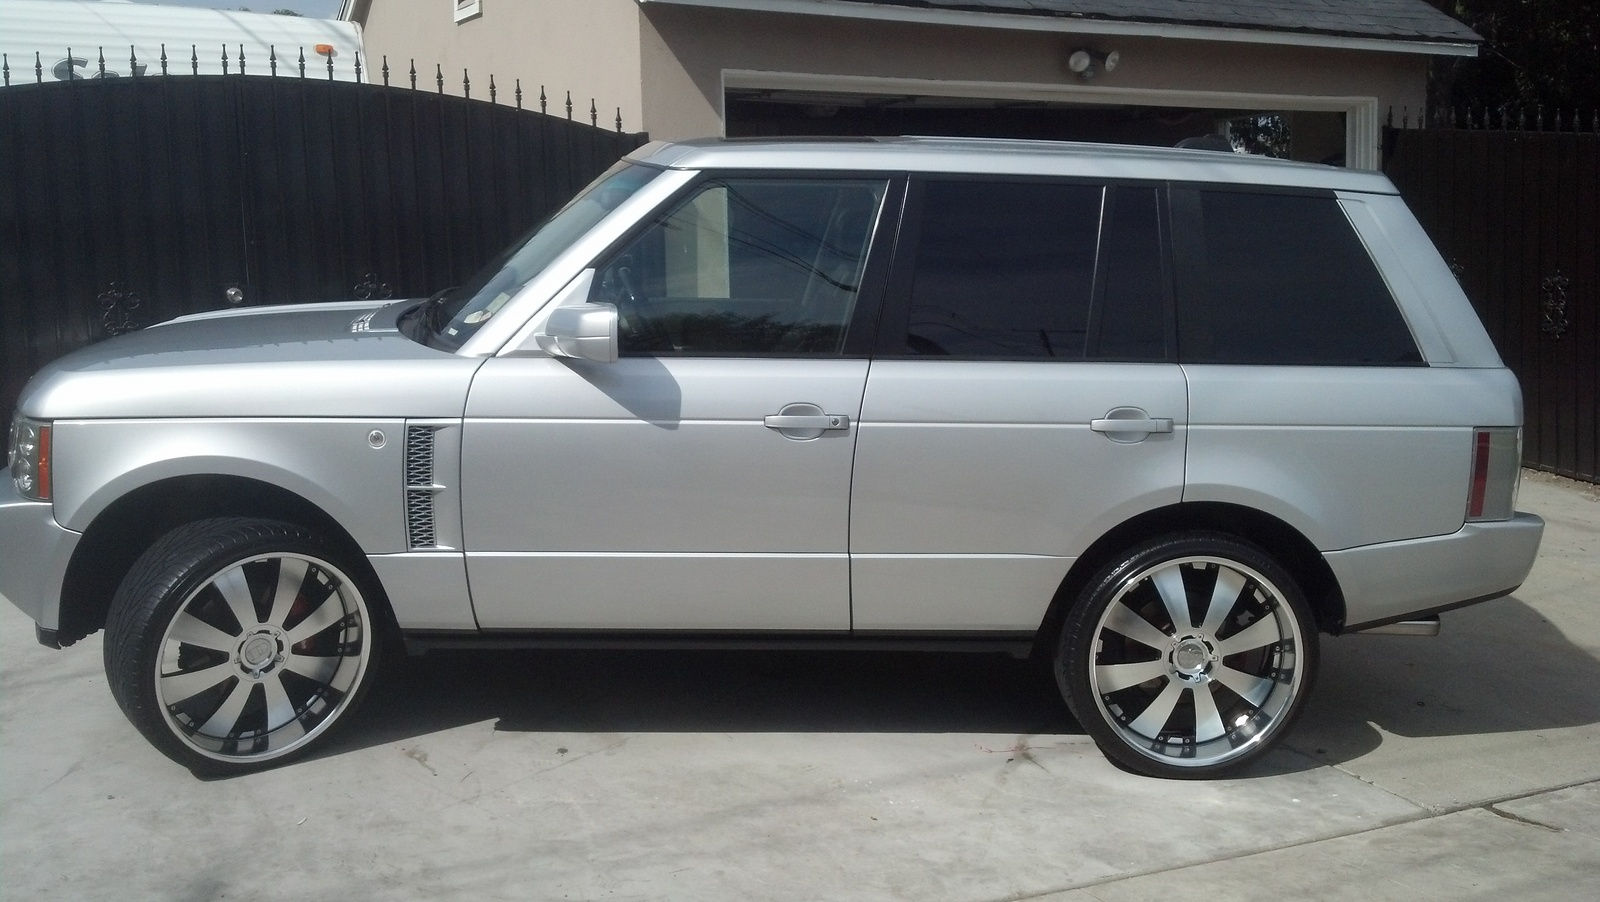 2006 Land Rover Range Rover Pictures Cargurus